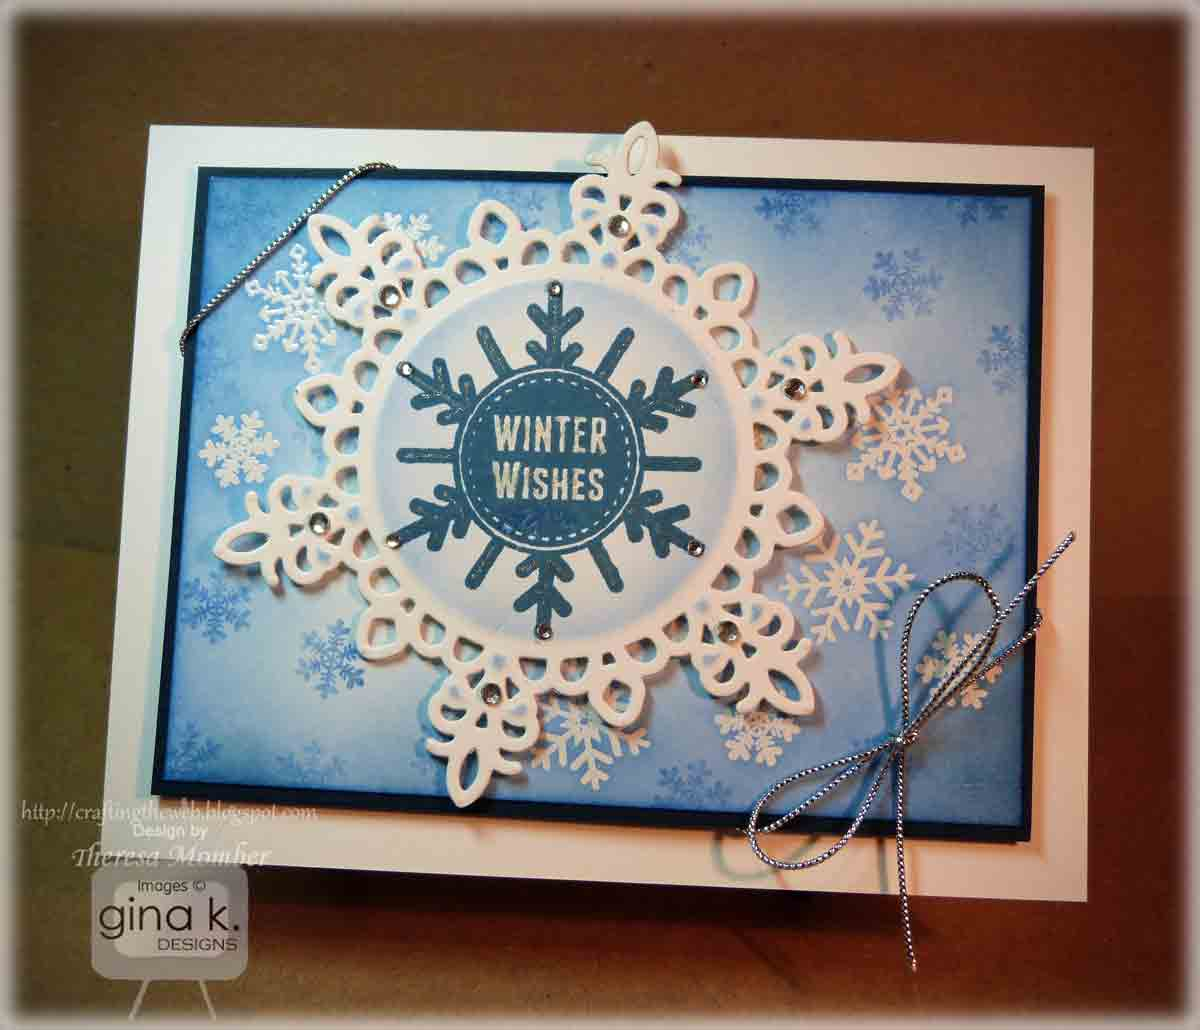 Crafting The Web Gina K October Release Inspiration Hop Day 2